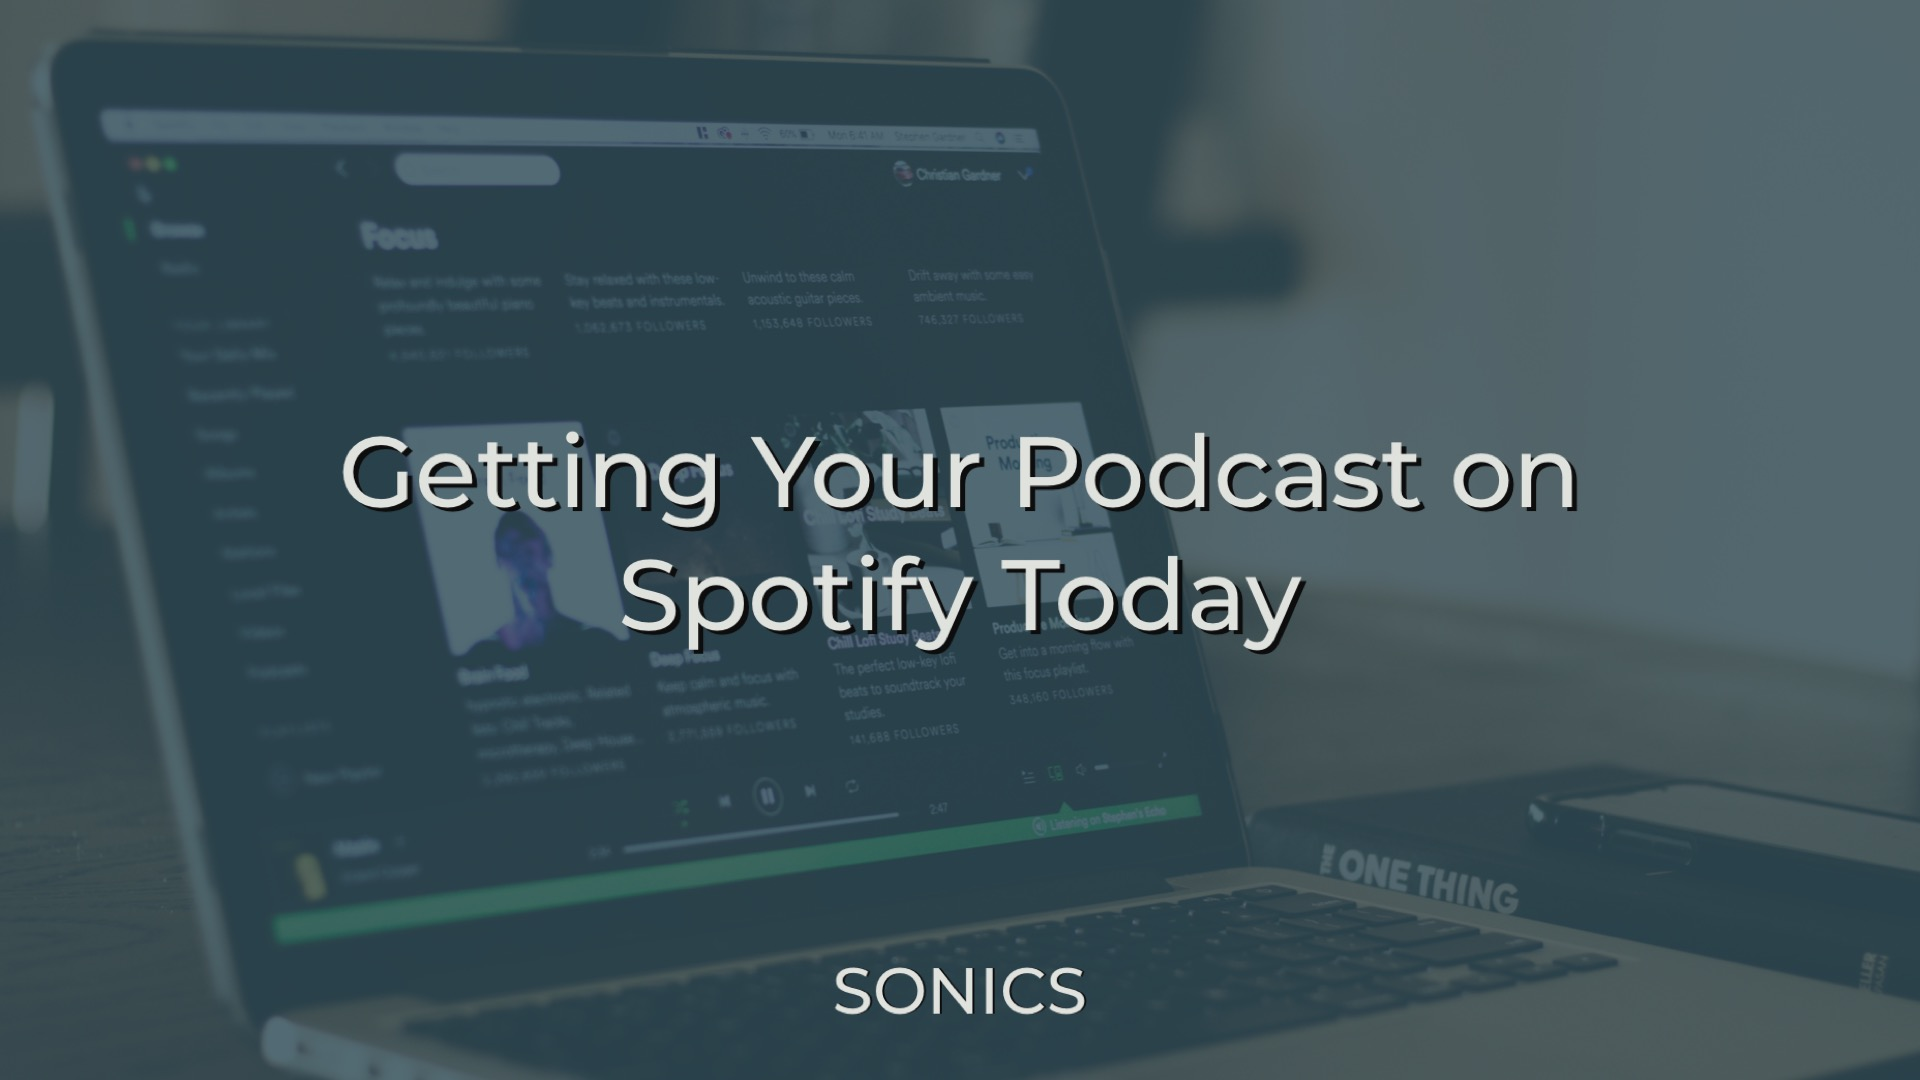 Podcast Spotify